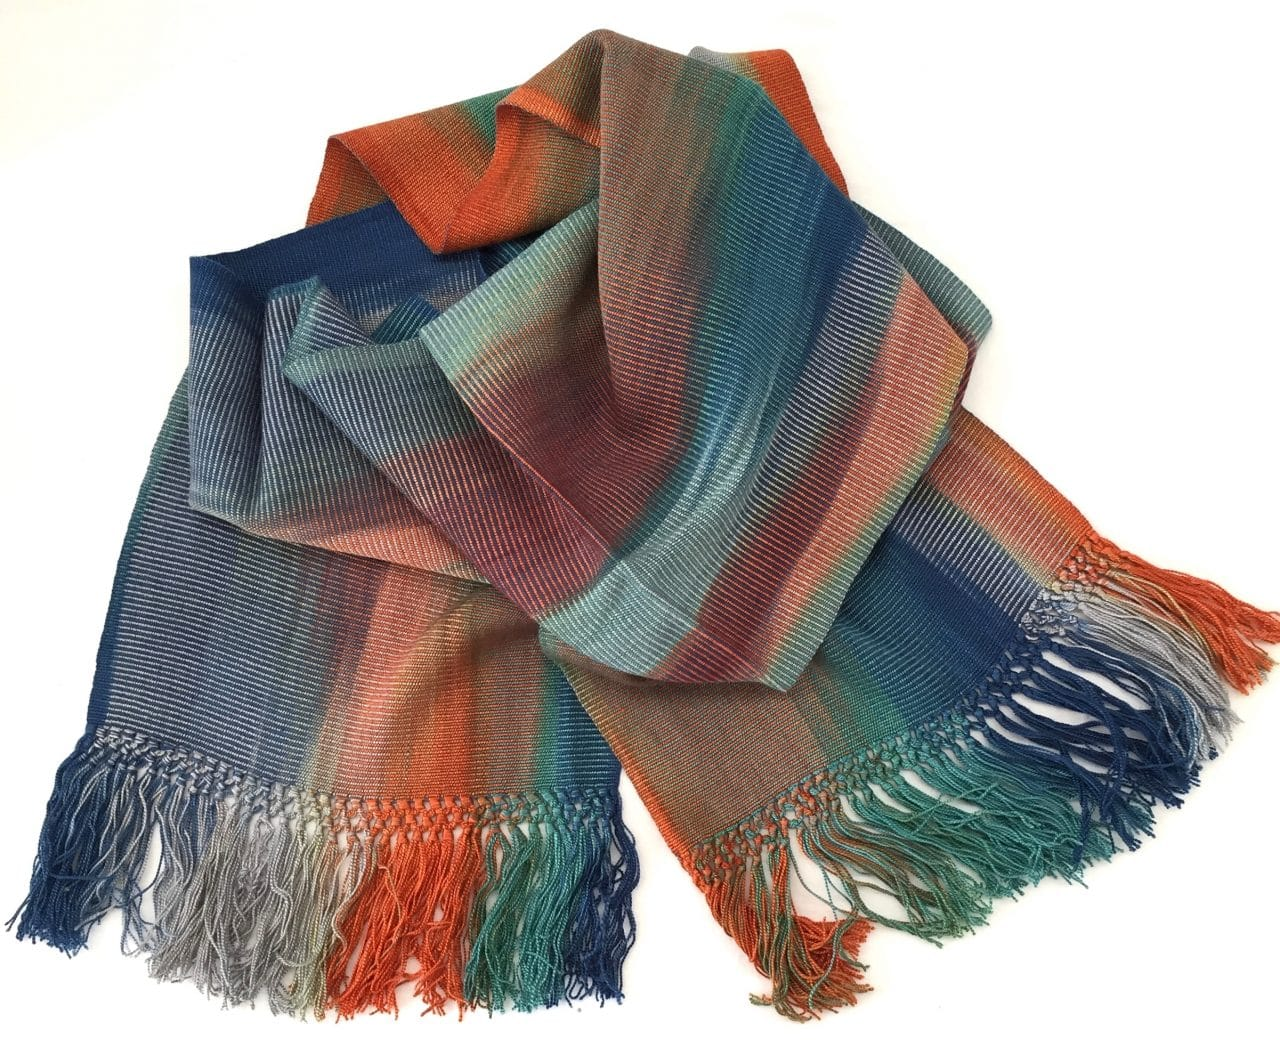 Blue, Orange, Gray - Lightweight Bamboo Handwoven Scarf 8 x 68